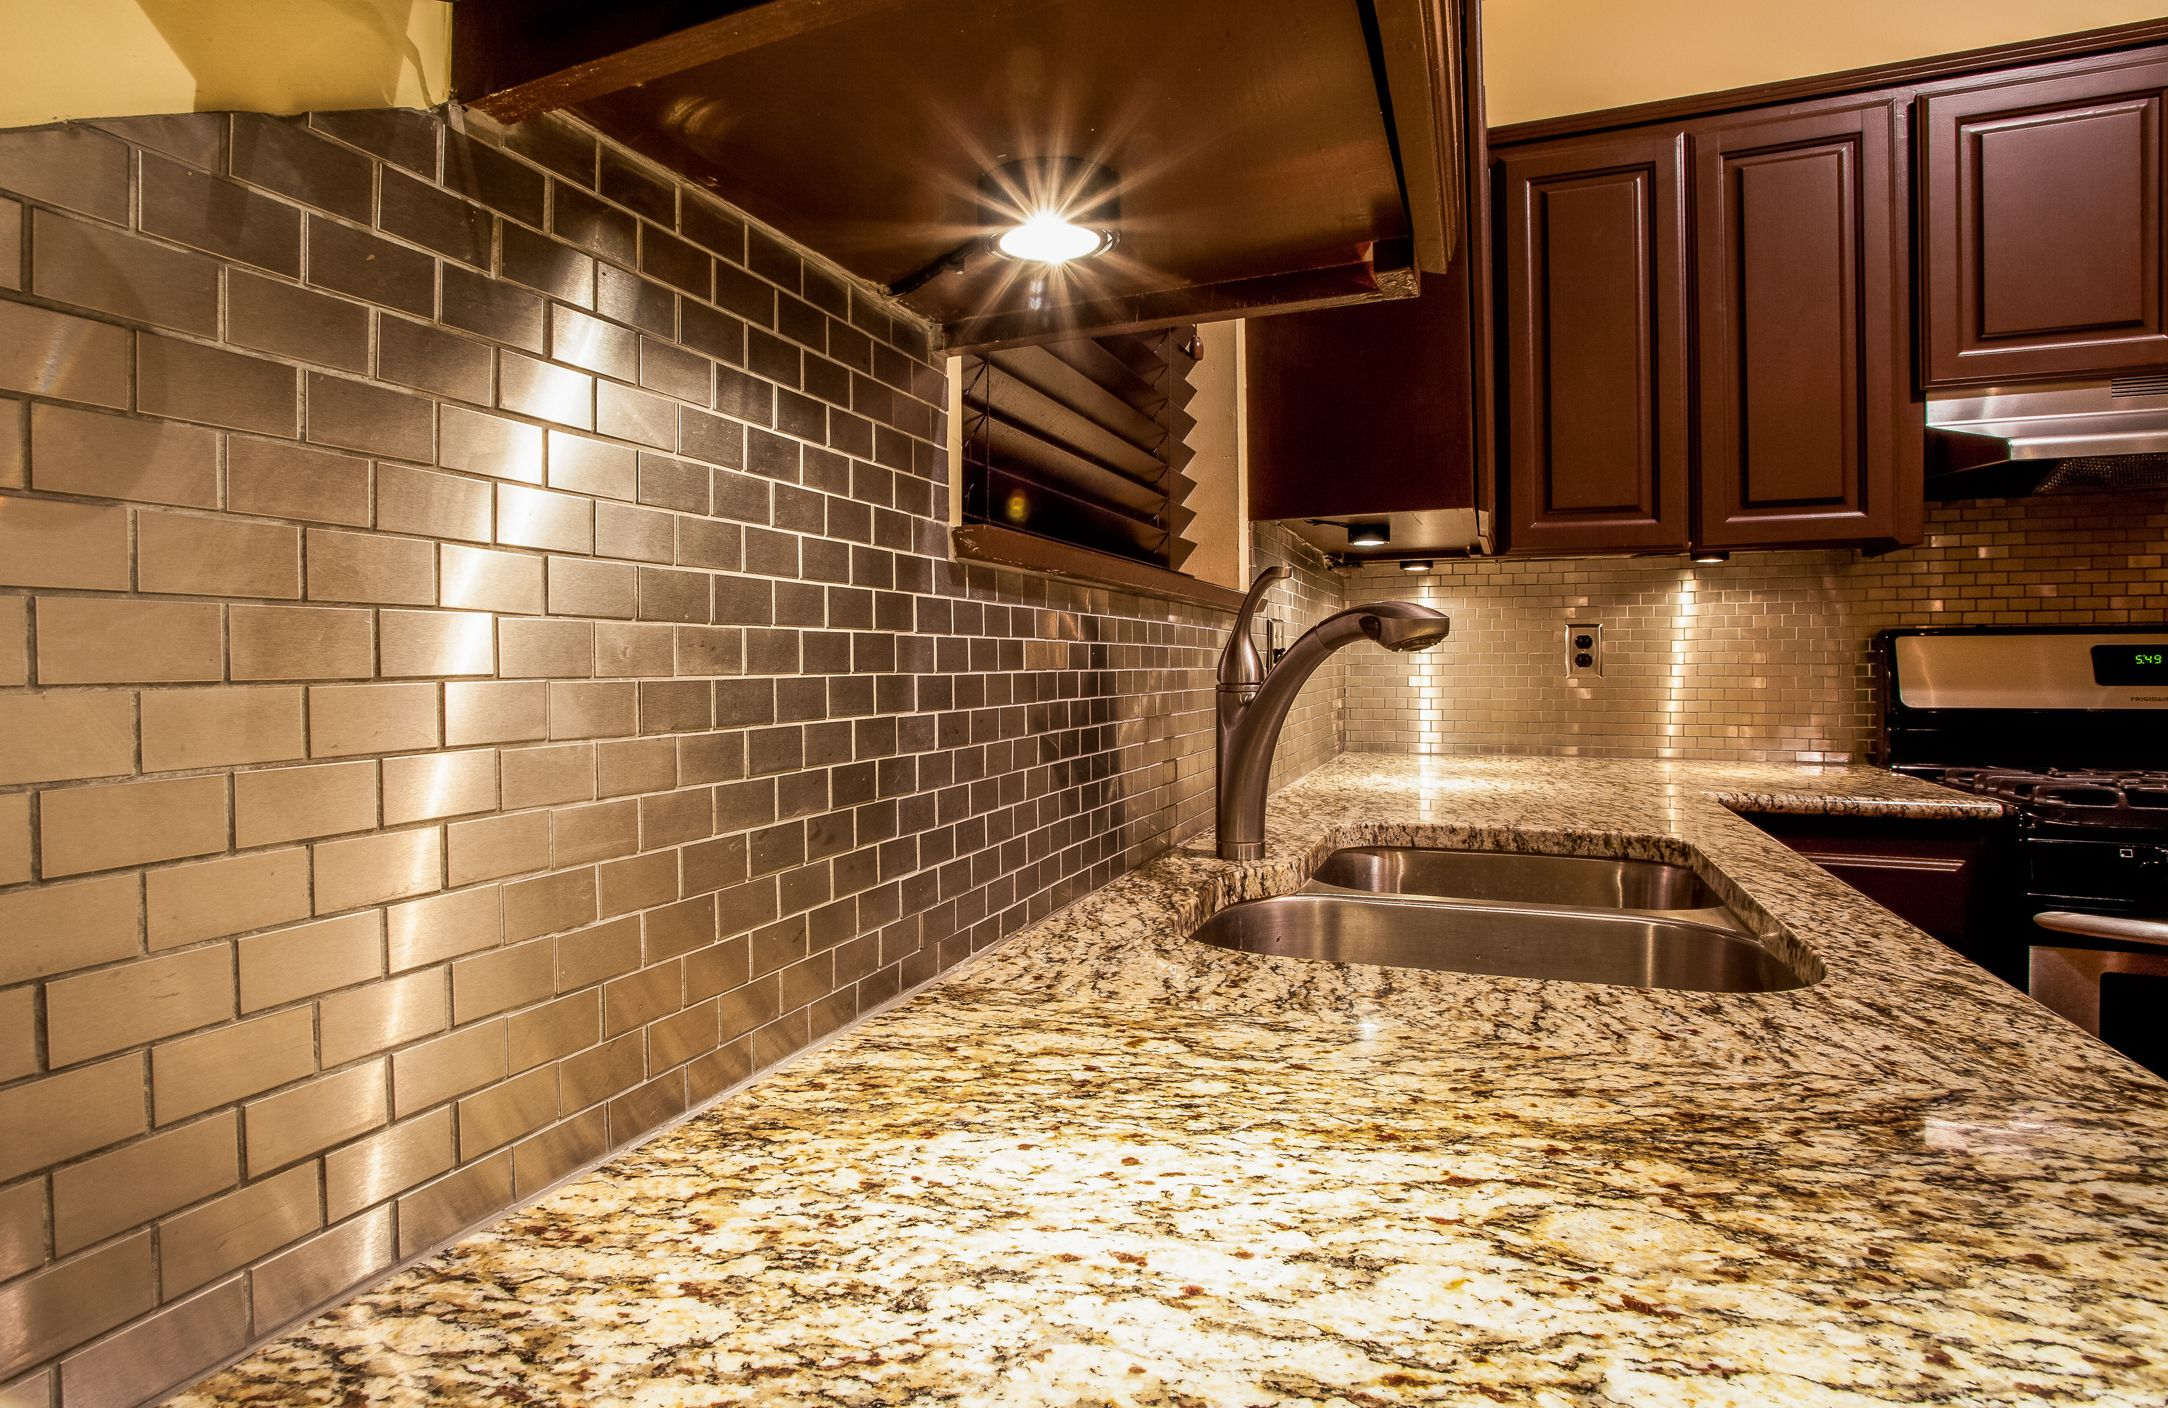 Countertops Okc Oklahoma City And Edmond Showers And Backsplash This Is One